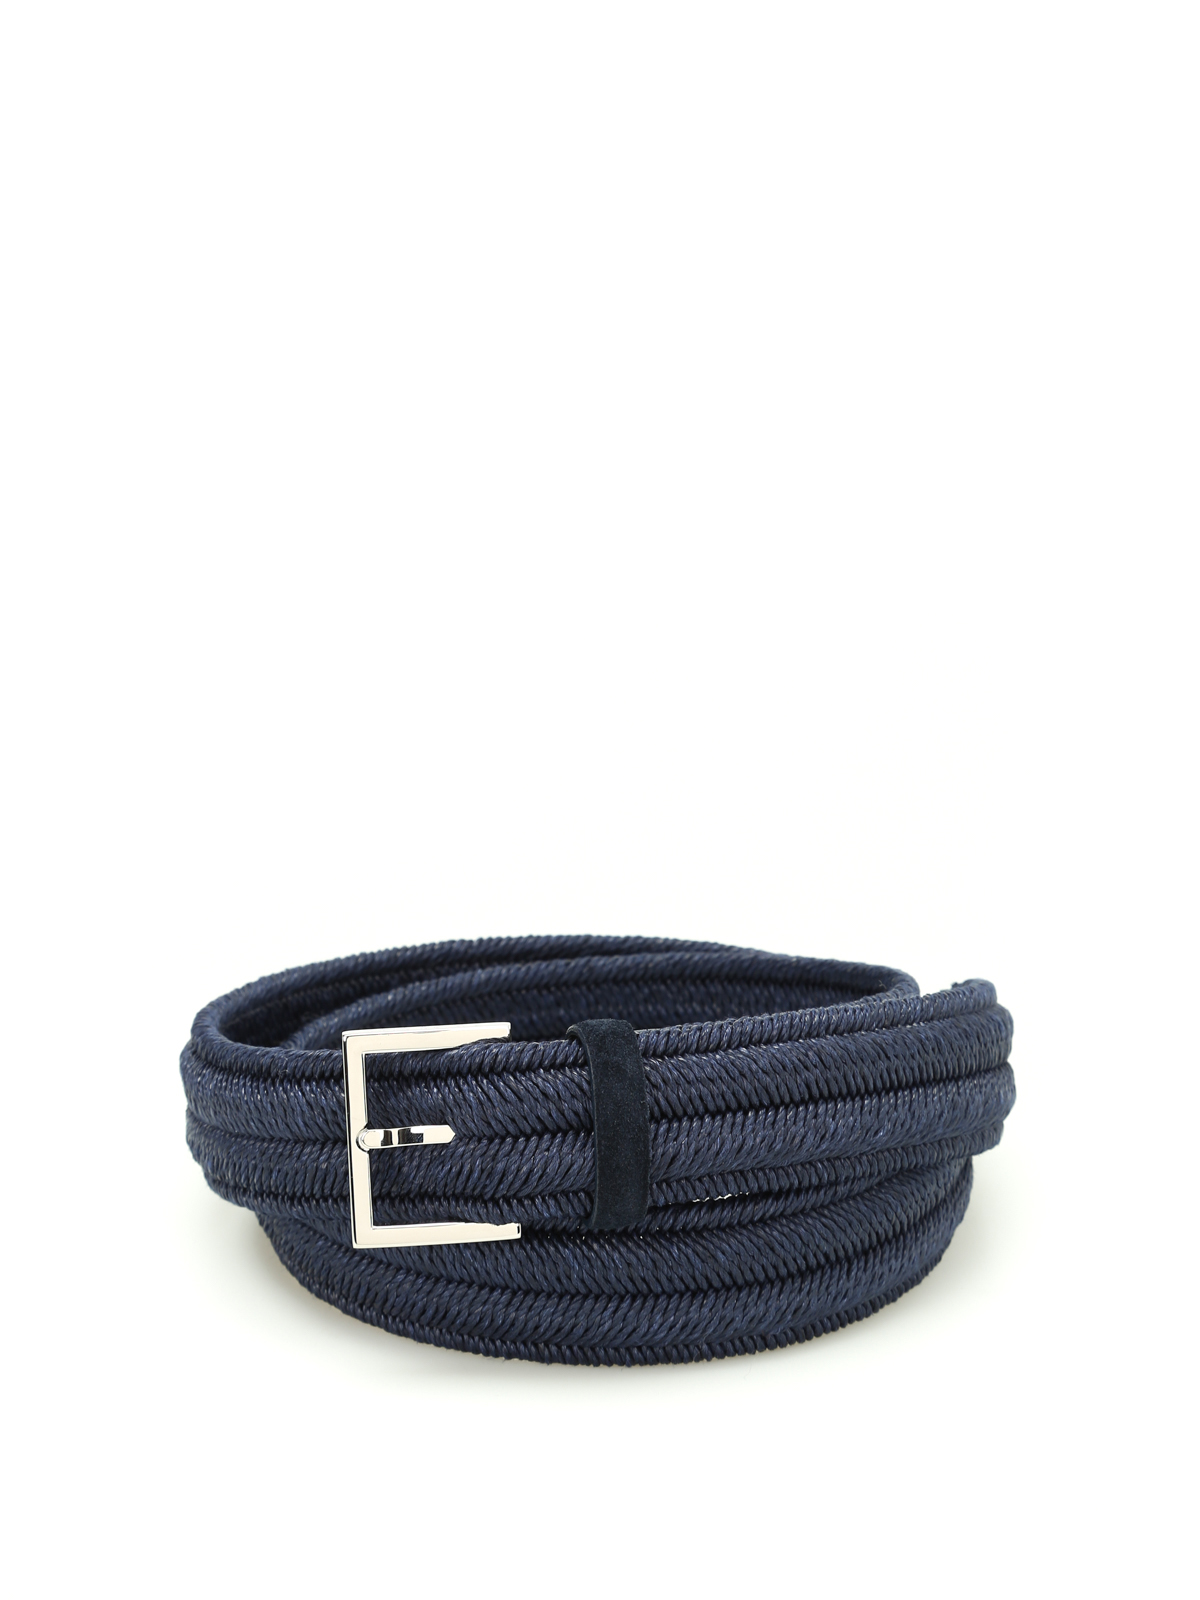 Fabric Belt with Velcro, Fabric Belt with Loop and Hook, Fabric Belt with Magic Tape, Fabric Belt with Easy Closure.